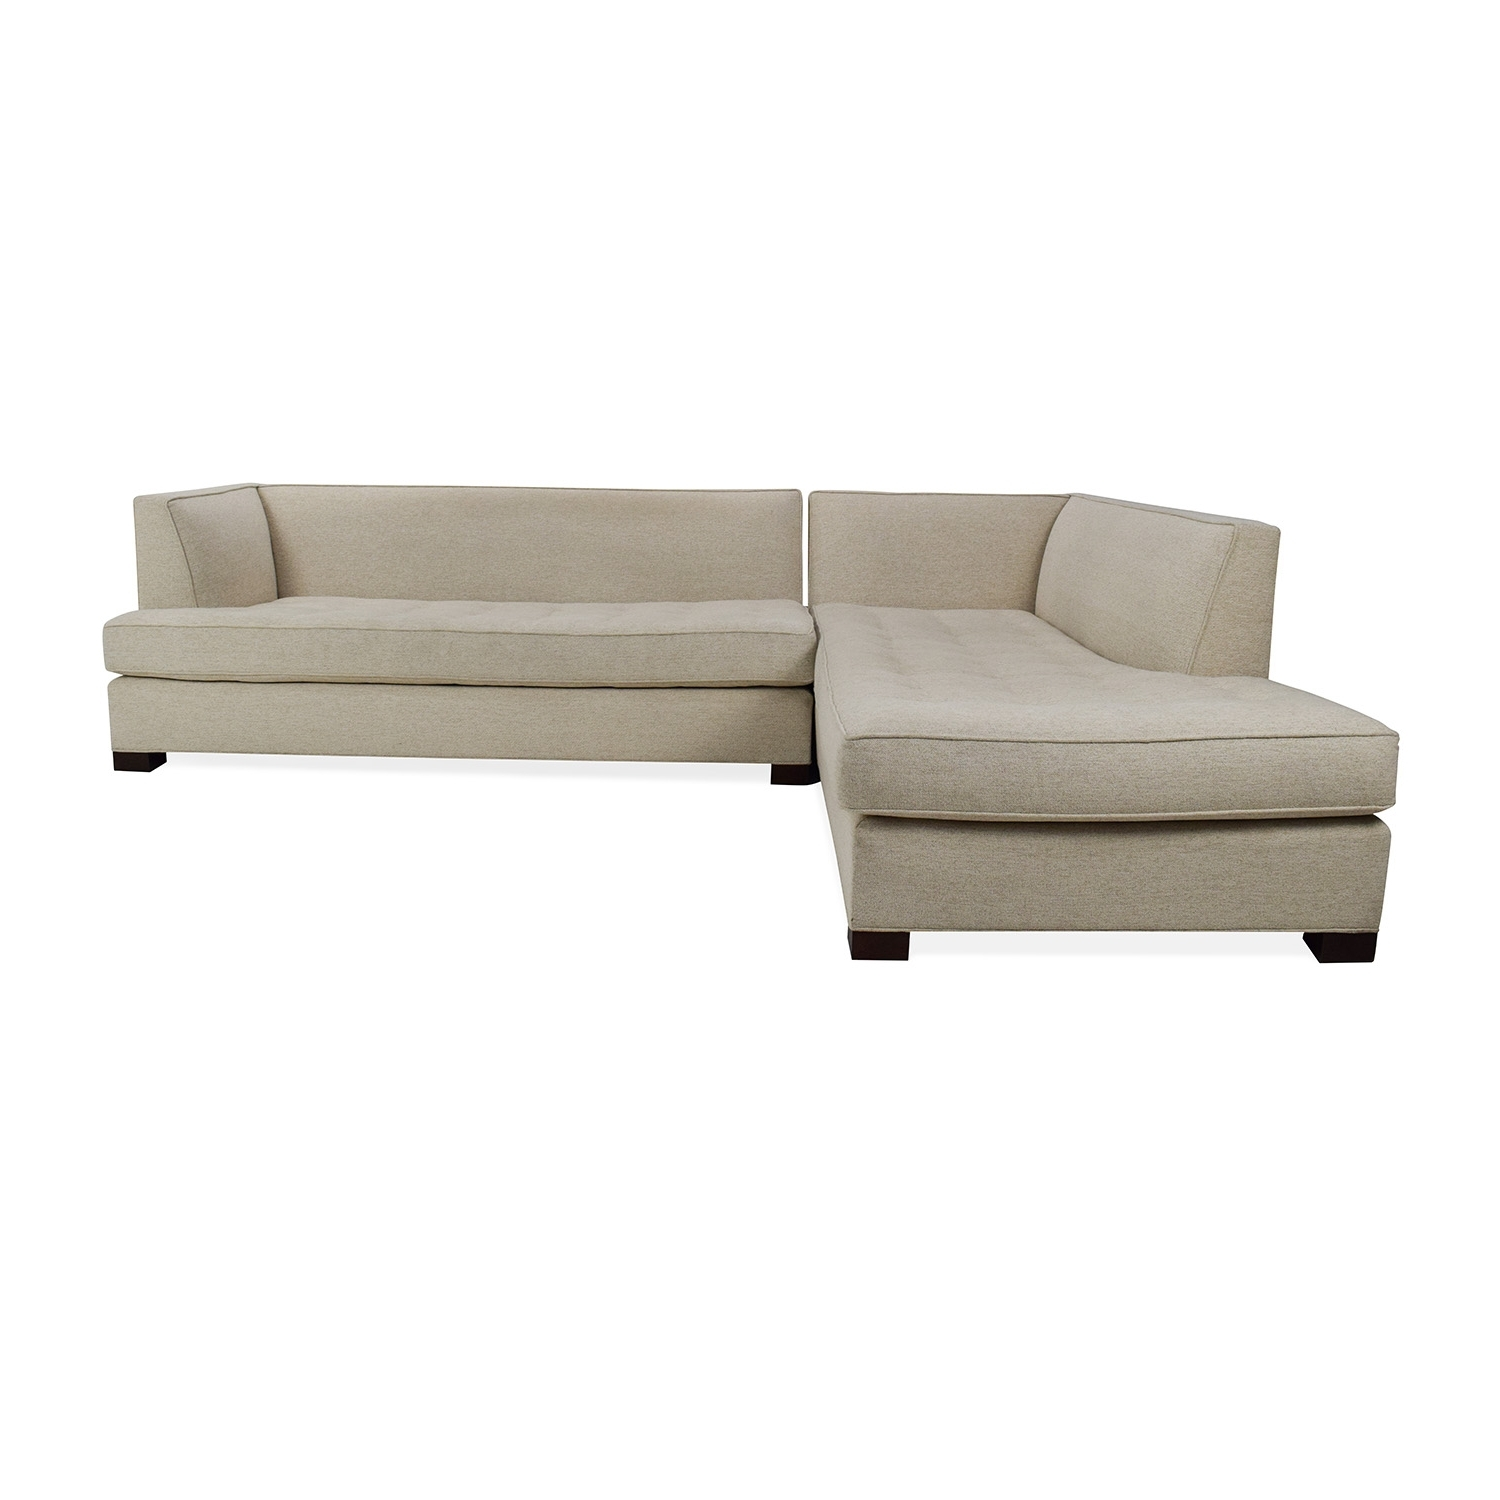 [%66% Off – Mitchell Gold + Bob Williams Mitchell Gold + Bob Pertaining To Current Gold Sectional Sofas|Gold Sectional Sofas With Regard To Trendy 66% Off – Mitchell Gold + Bob Williams Mitchell Gold + Bob|Well Known Gold Sectional Sofas Inside 66% Off – Mitchell Gold + Bob Williams Mitchell Gold + Bob|Most Current 66% Off – Mitchell Gold + Bob Williams Mitchell Gold + Bob For Gold Sectional Sofas%] (View 1 of 20)